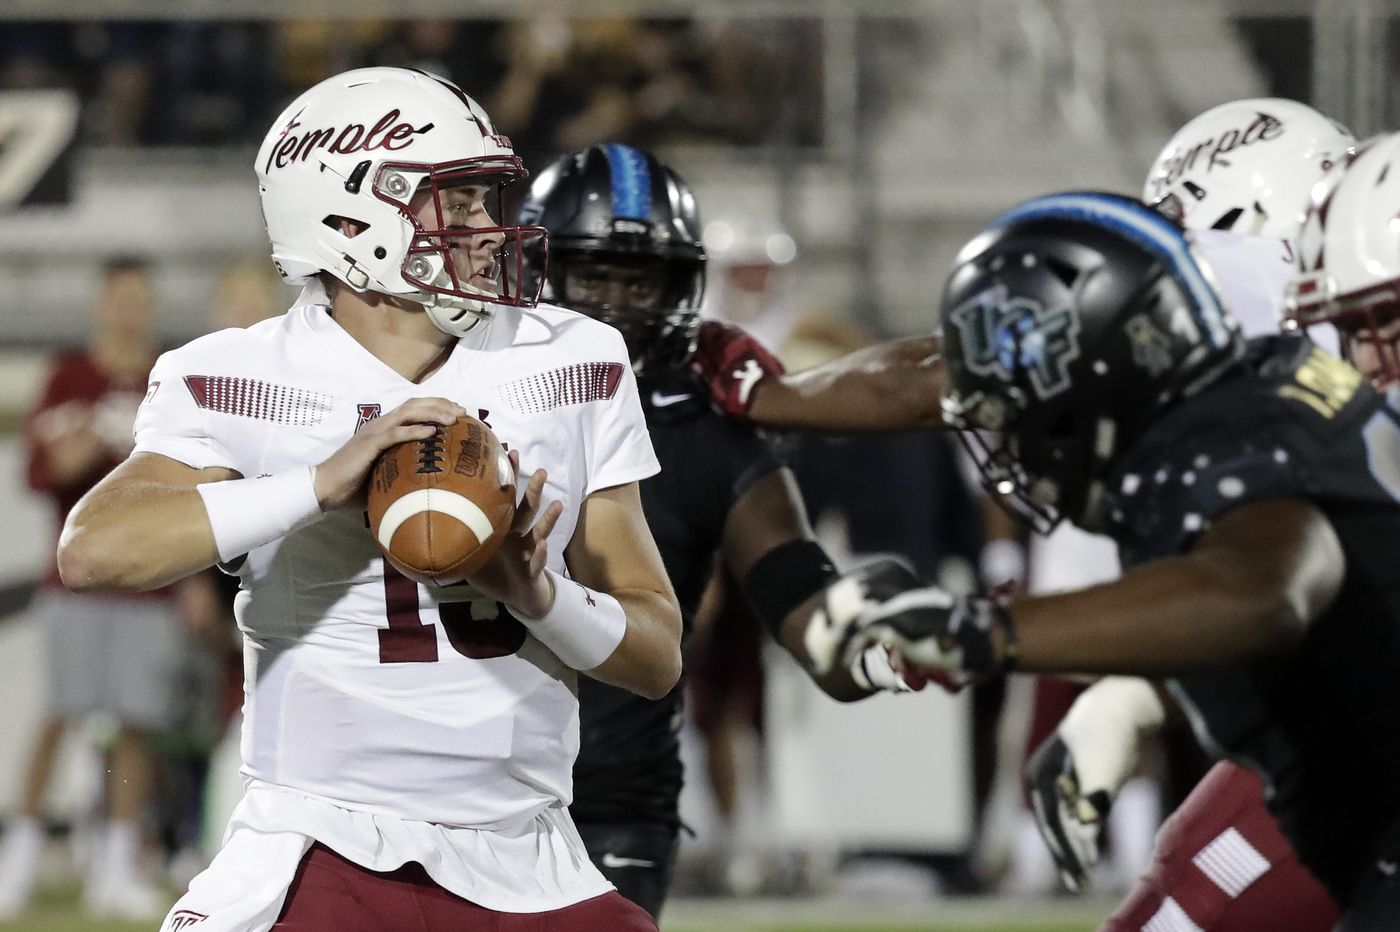 Temple-Houston prediction: Can the Owls bounce back and upset the Cougars?